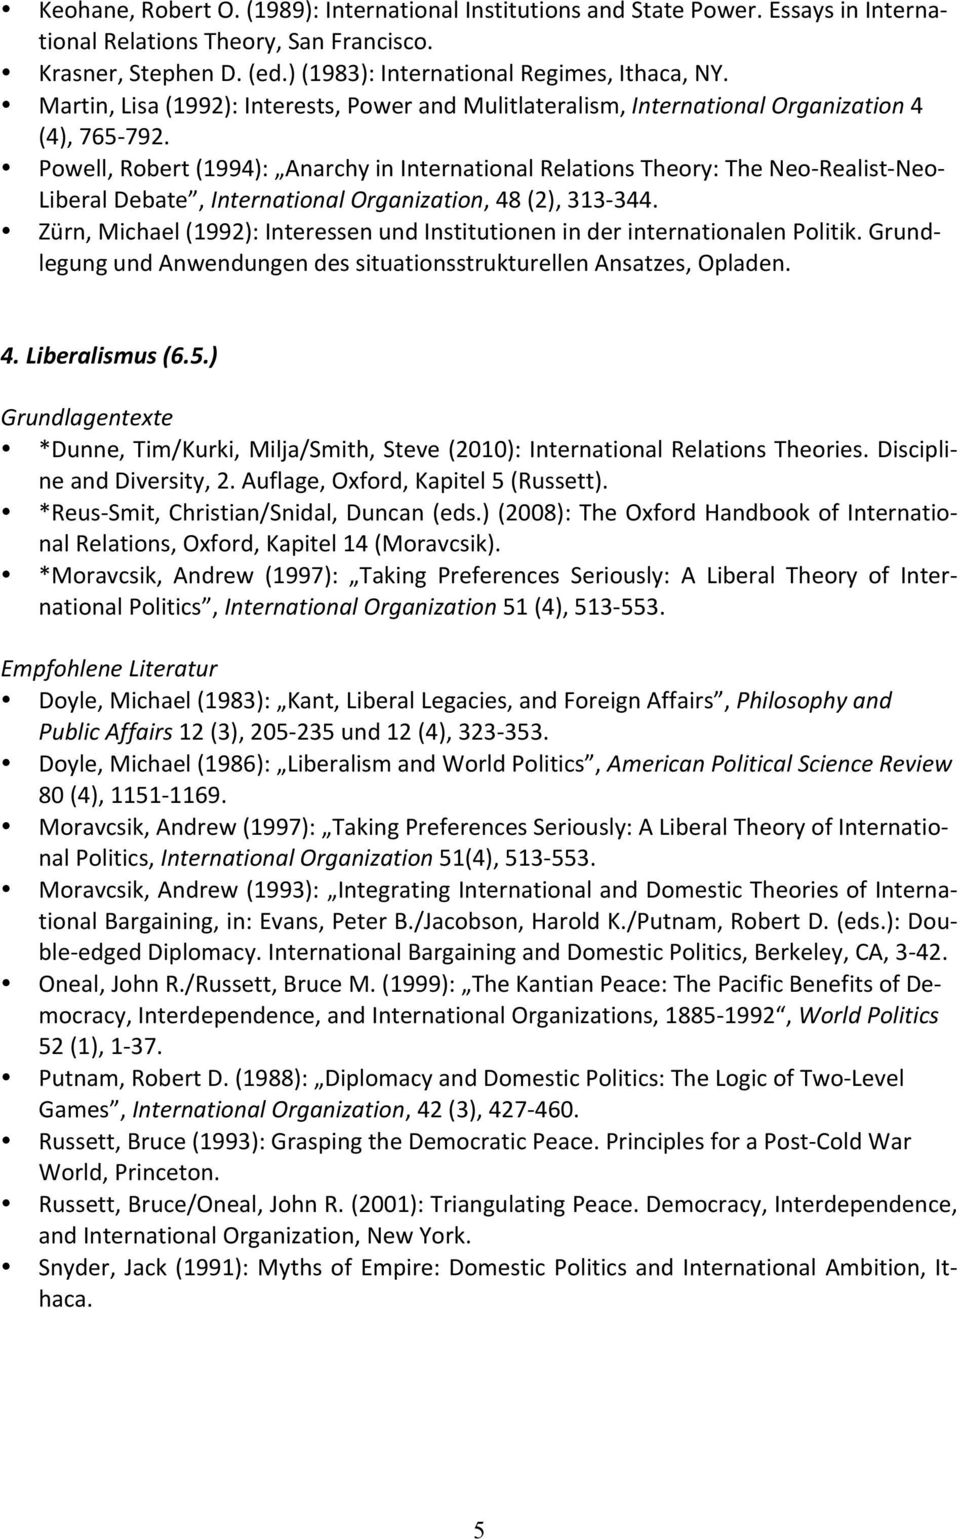 Powell, Robert (1994): Anarchy in International Relations Theory: The Neo- Realist- Neo- Liberal Debate, International Organization, 48 (2), 313-344.